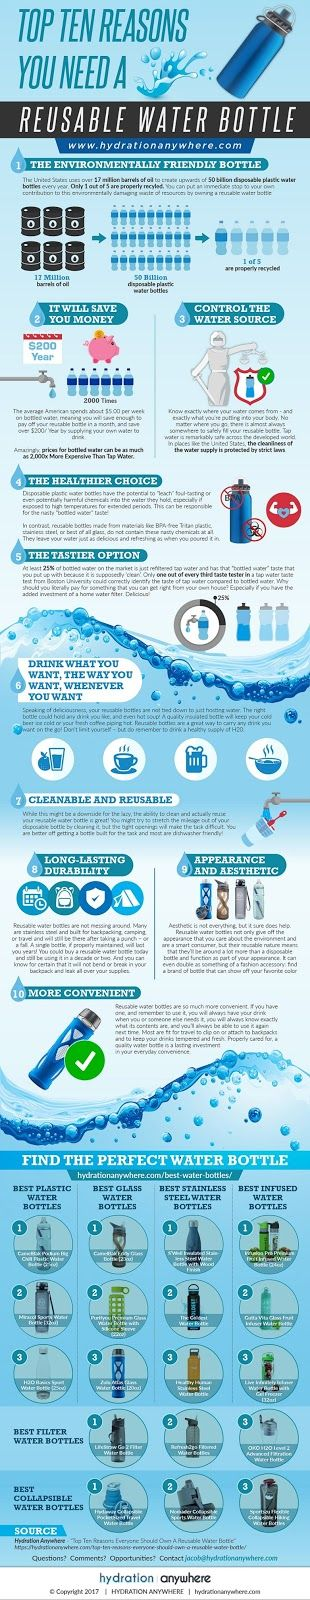 Sustainable Living Tucson: Top 10 reasons you need a REUSABLE WATER BOTTLE